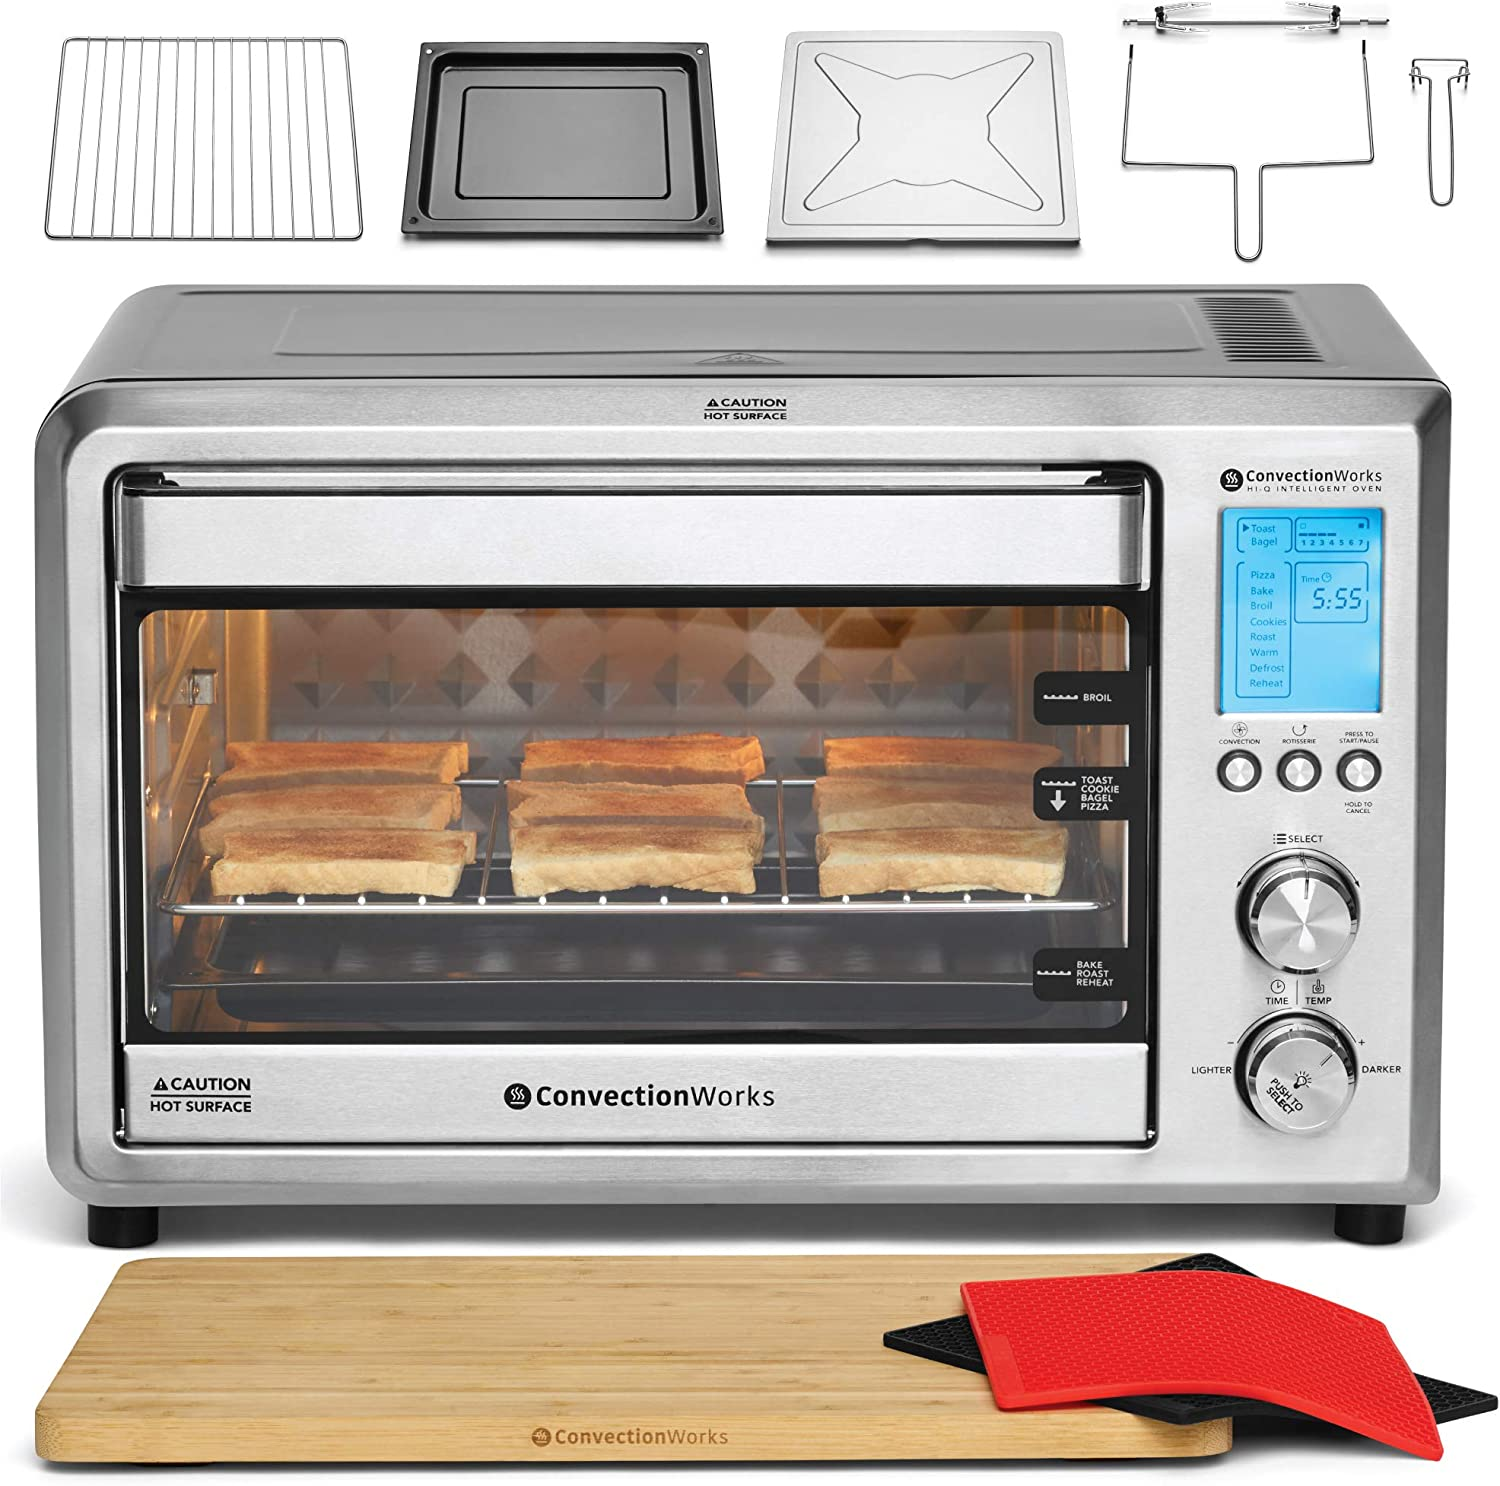 ConvectionWorks Hi-Q Intelligent Countertop Oven Set, 9-Slice XL Convection Oven Toaster w Bamboo Cutting Board 10 Accessories, Rotisserie Spit Included , 1500 Watt, Stainless Steel, Teflon-free Silver